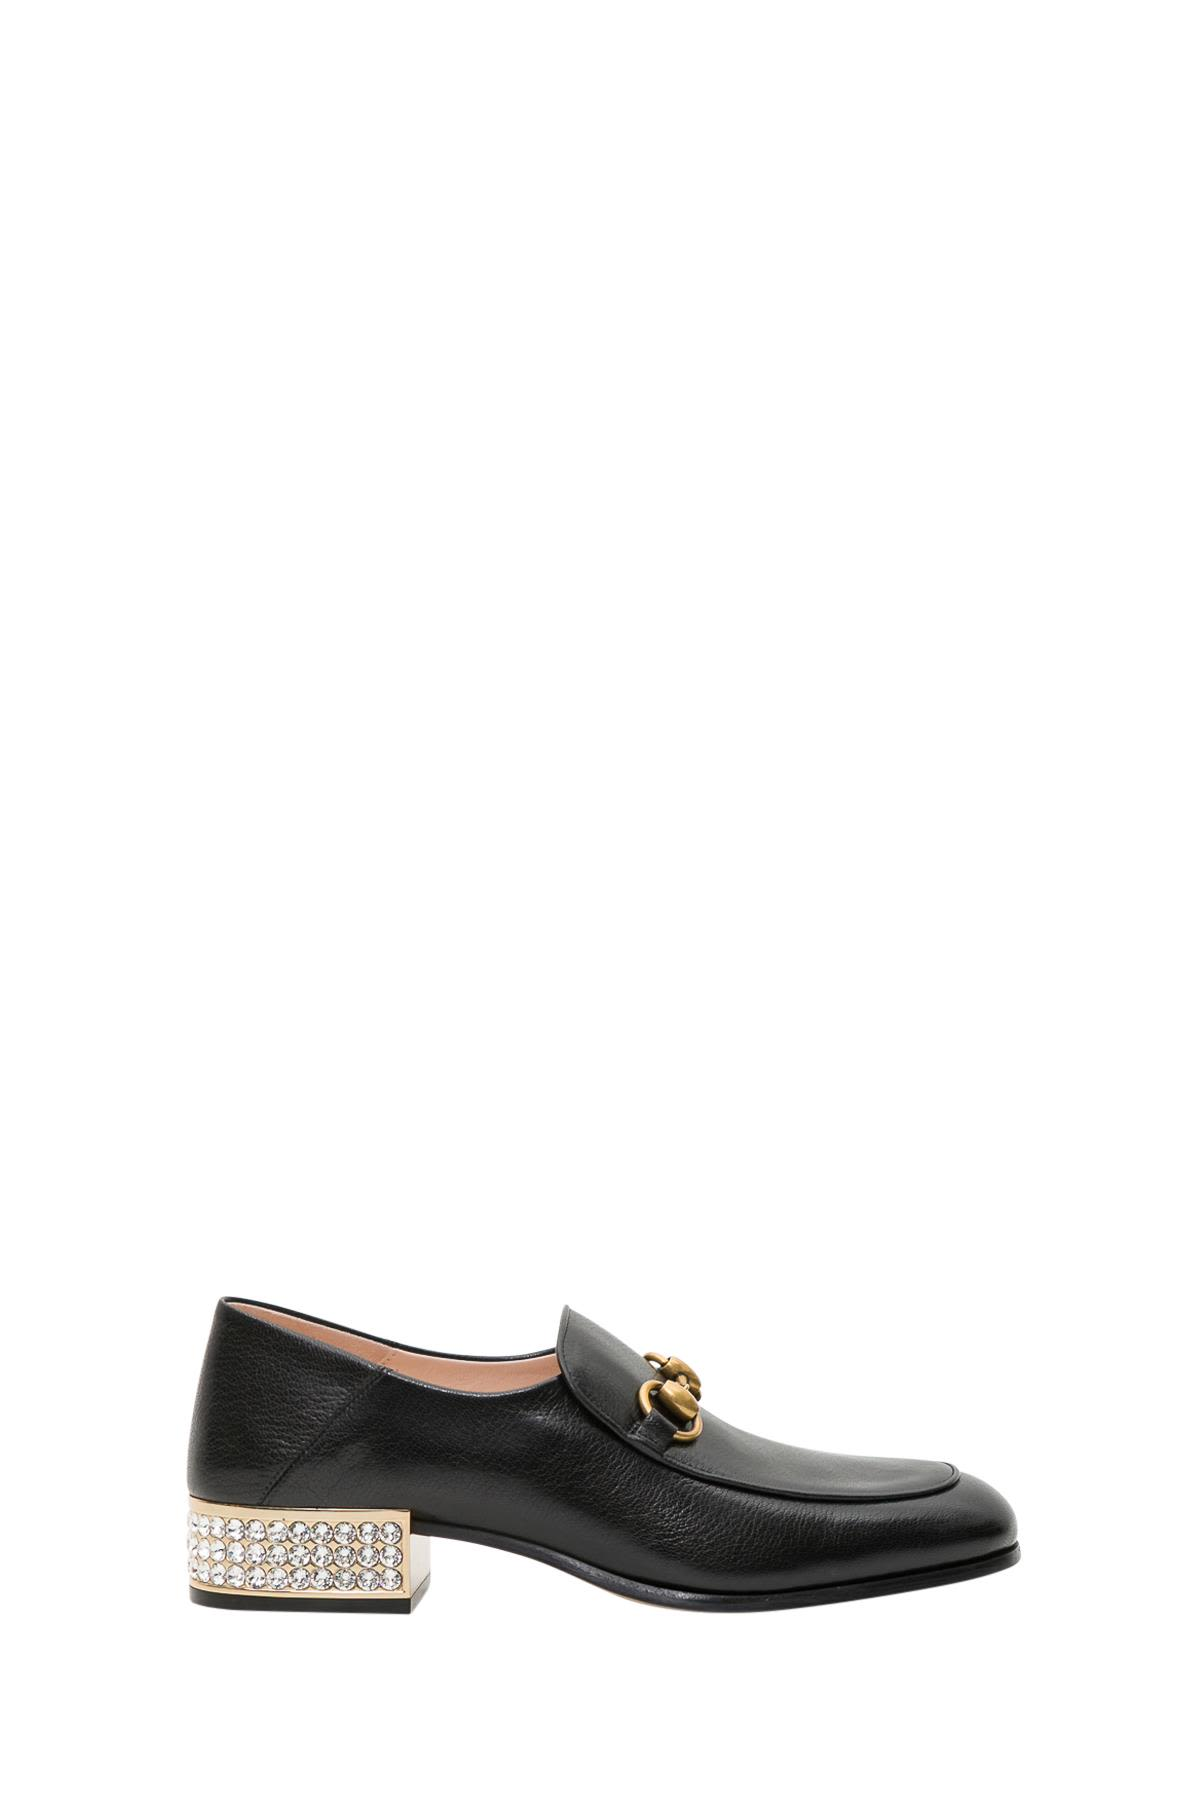 Horsebit Crystal Leather Loafers In Black from LN-CC